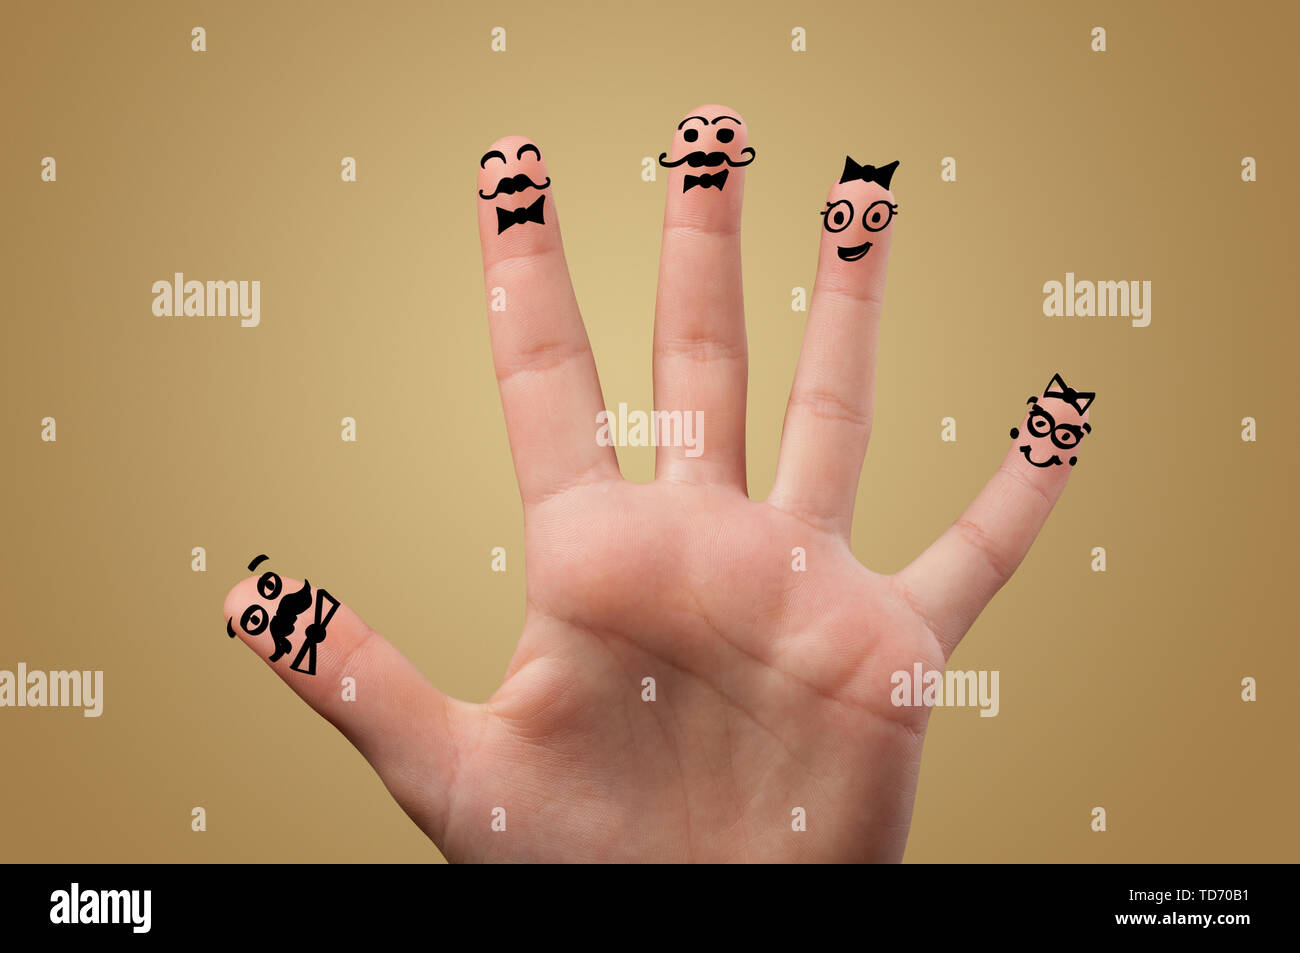 Elegant happy face fingers hugs each other  - Stock Image